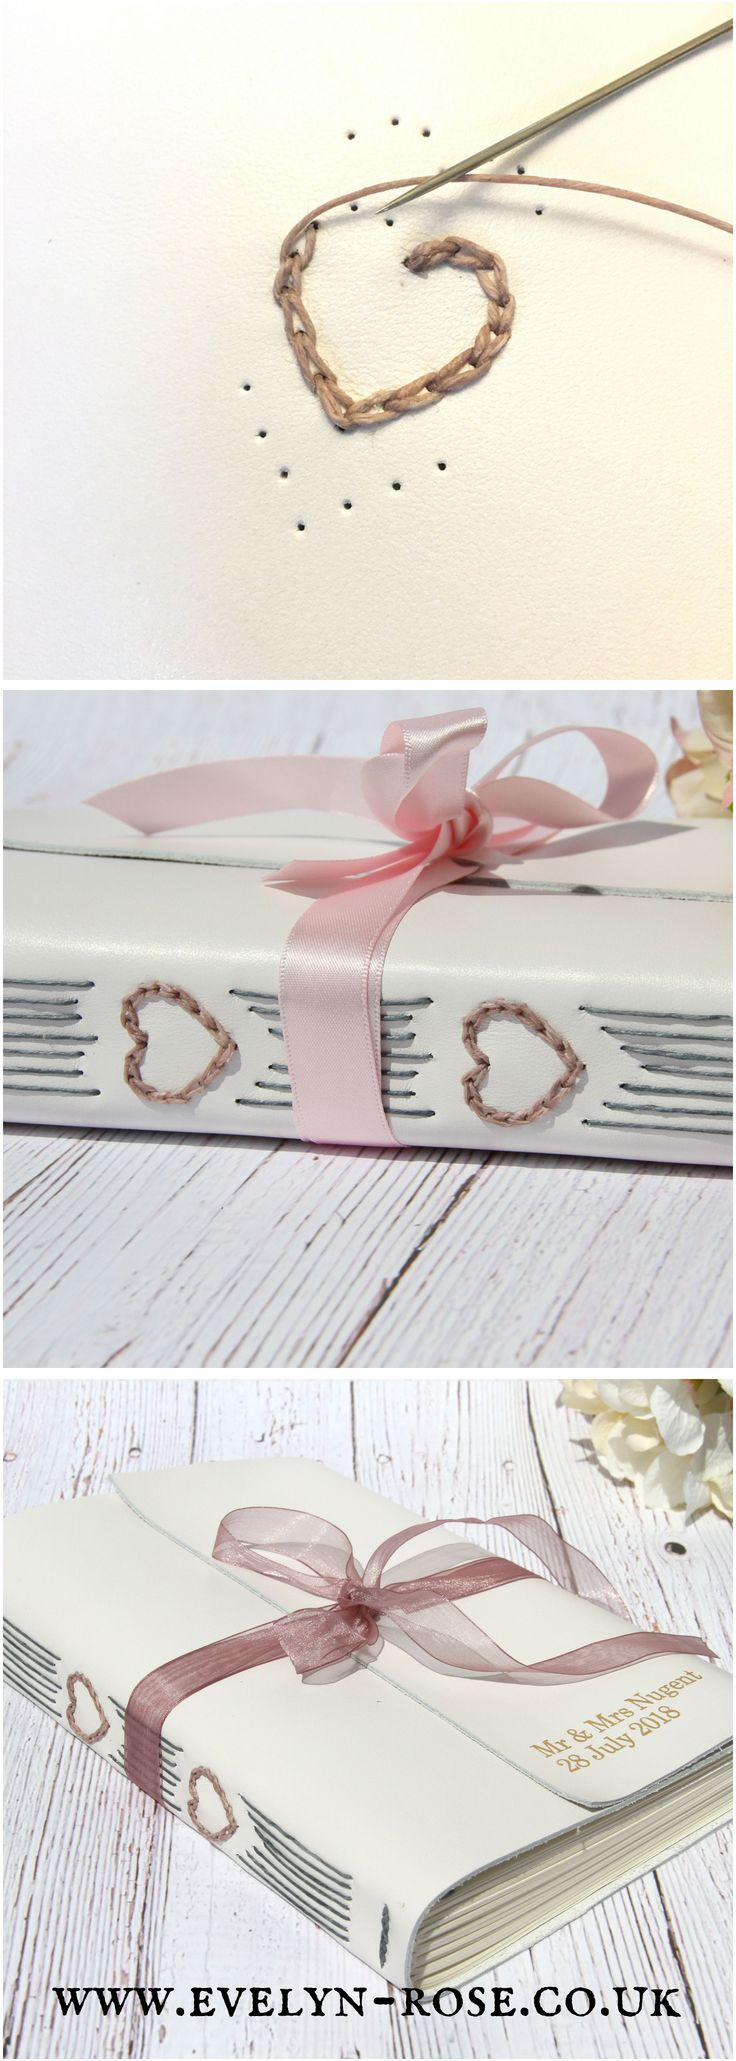 Evelyn Rose Books Silver wedding anniversary gift